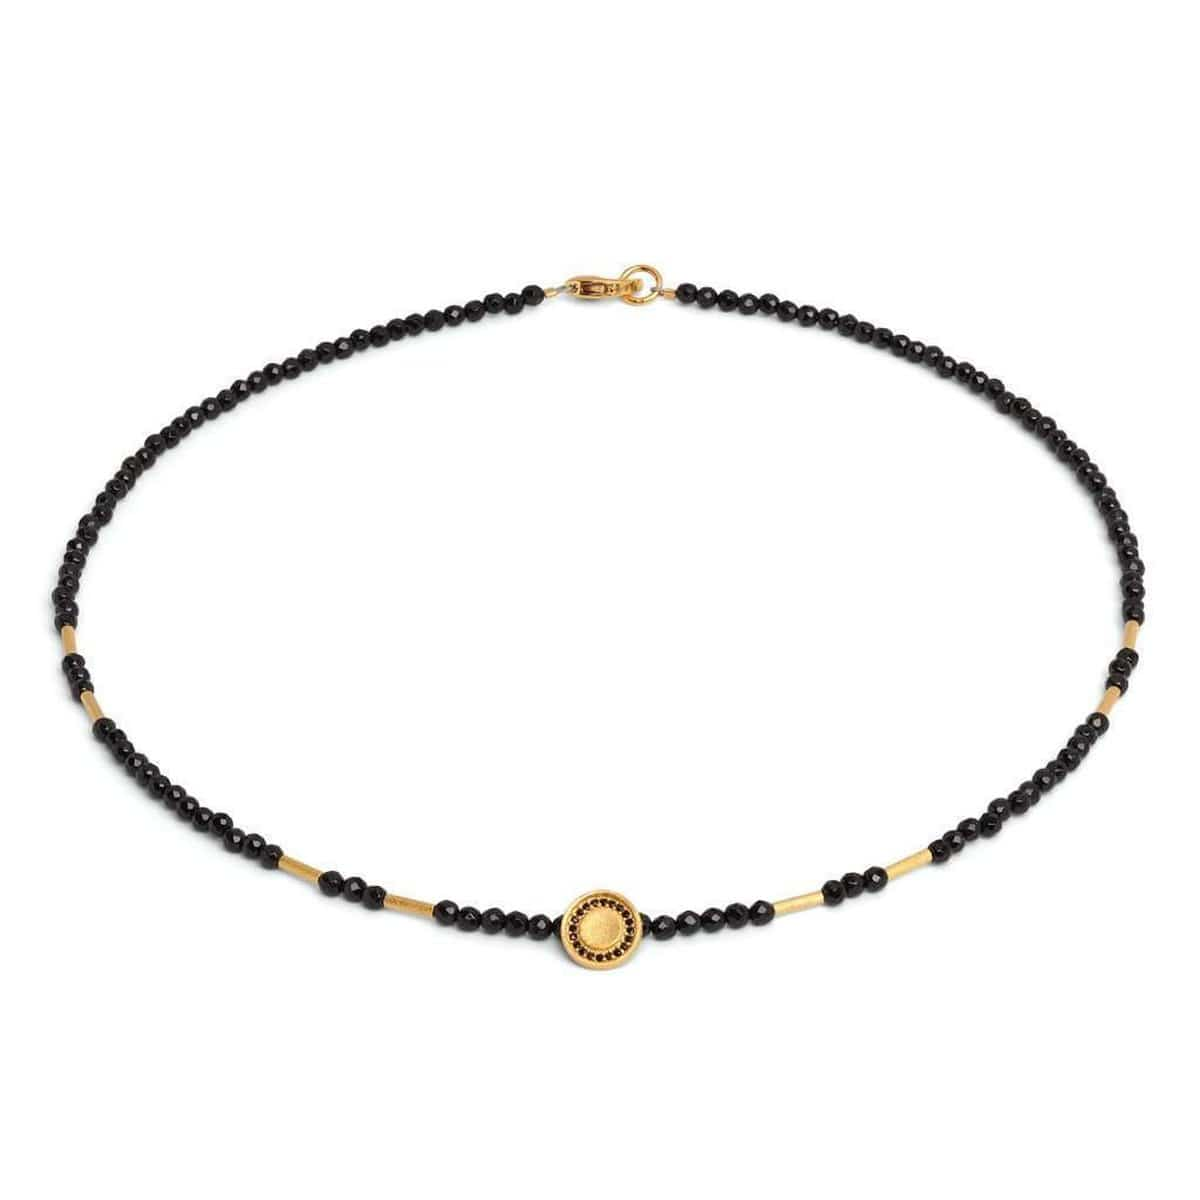 Cory Black Spinel Necklace - 83935496-Bernd Wolf-Renee Taylor Gallery